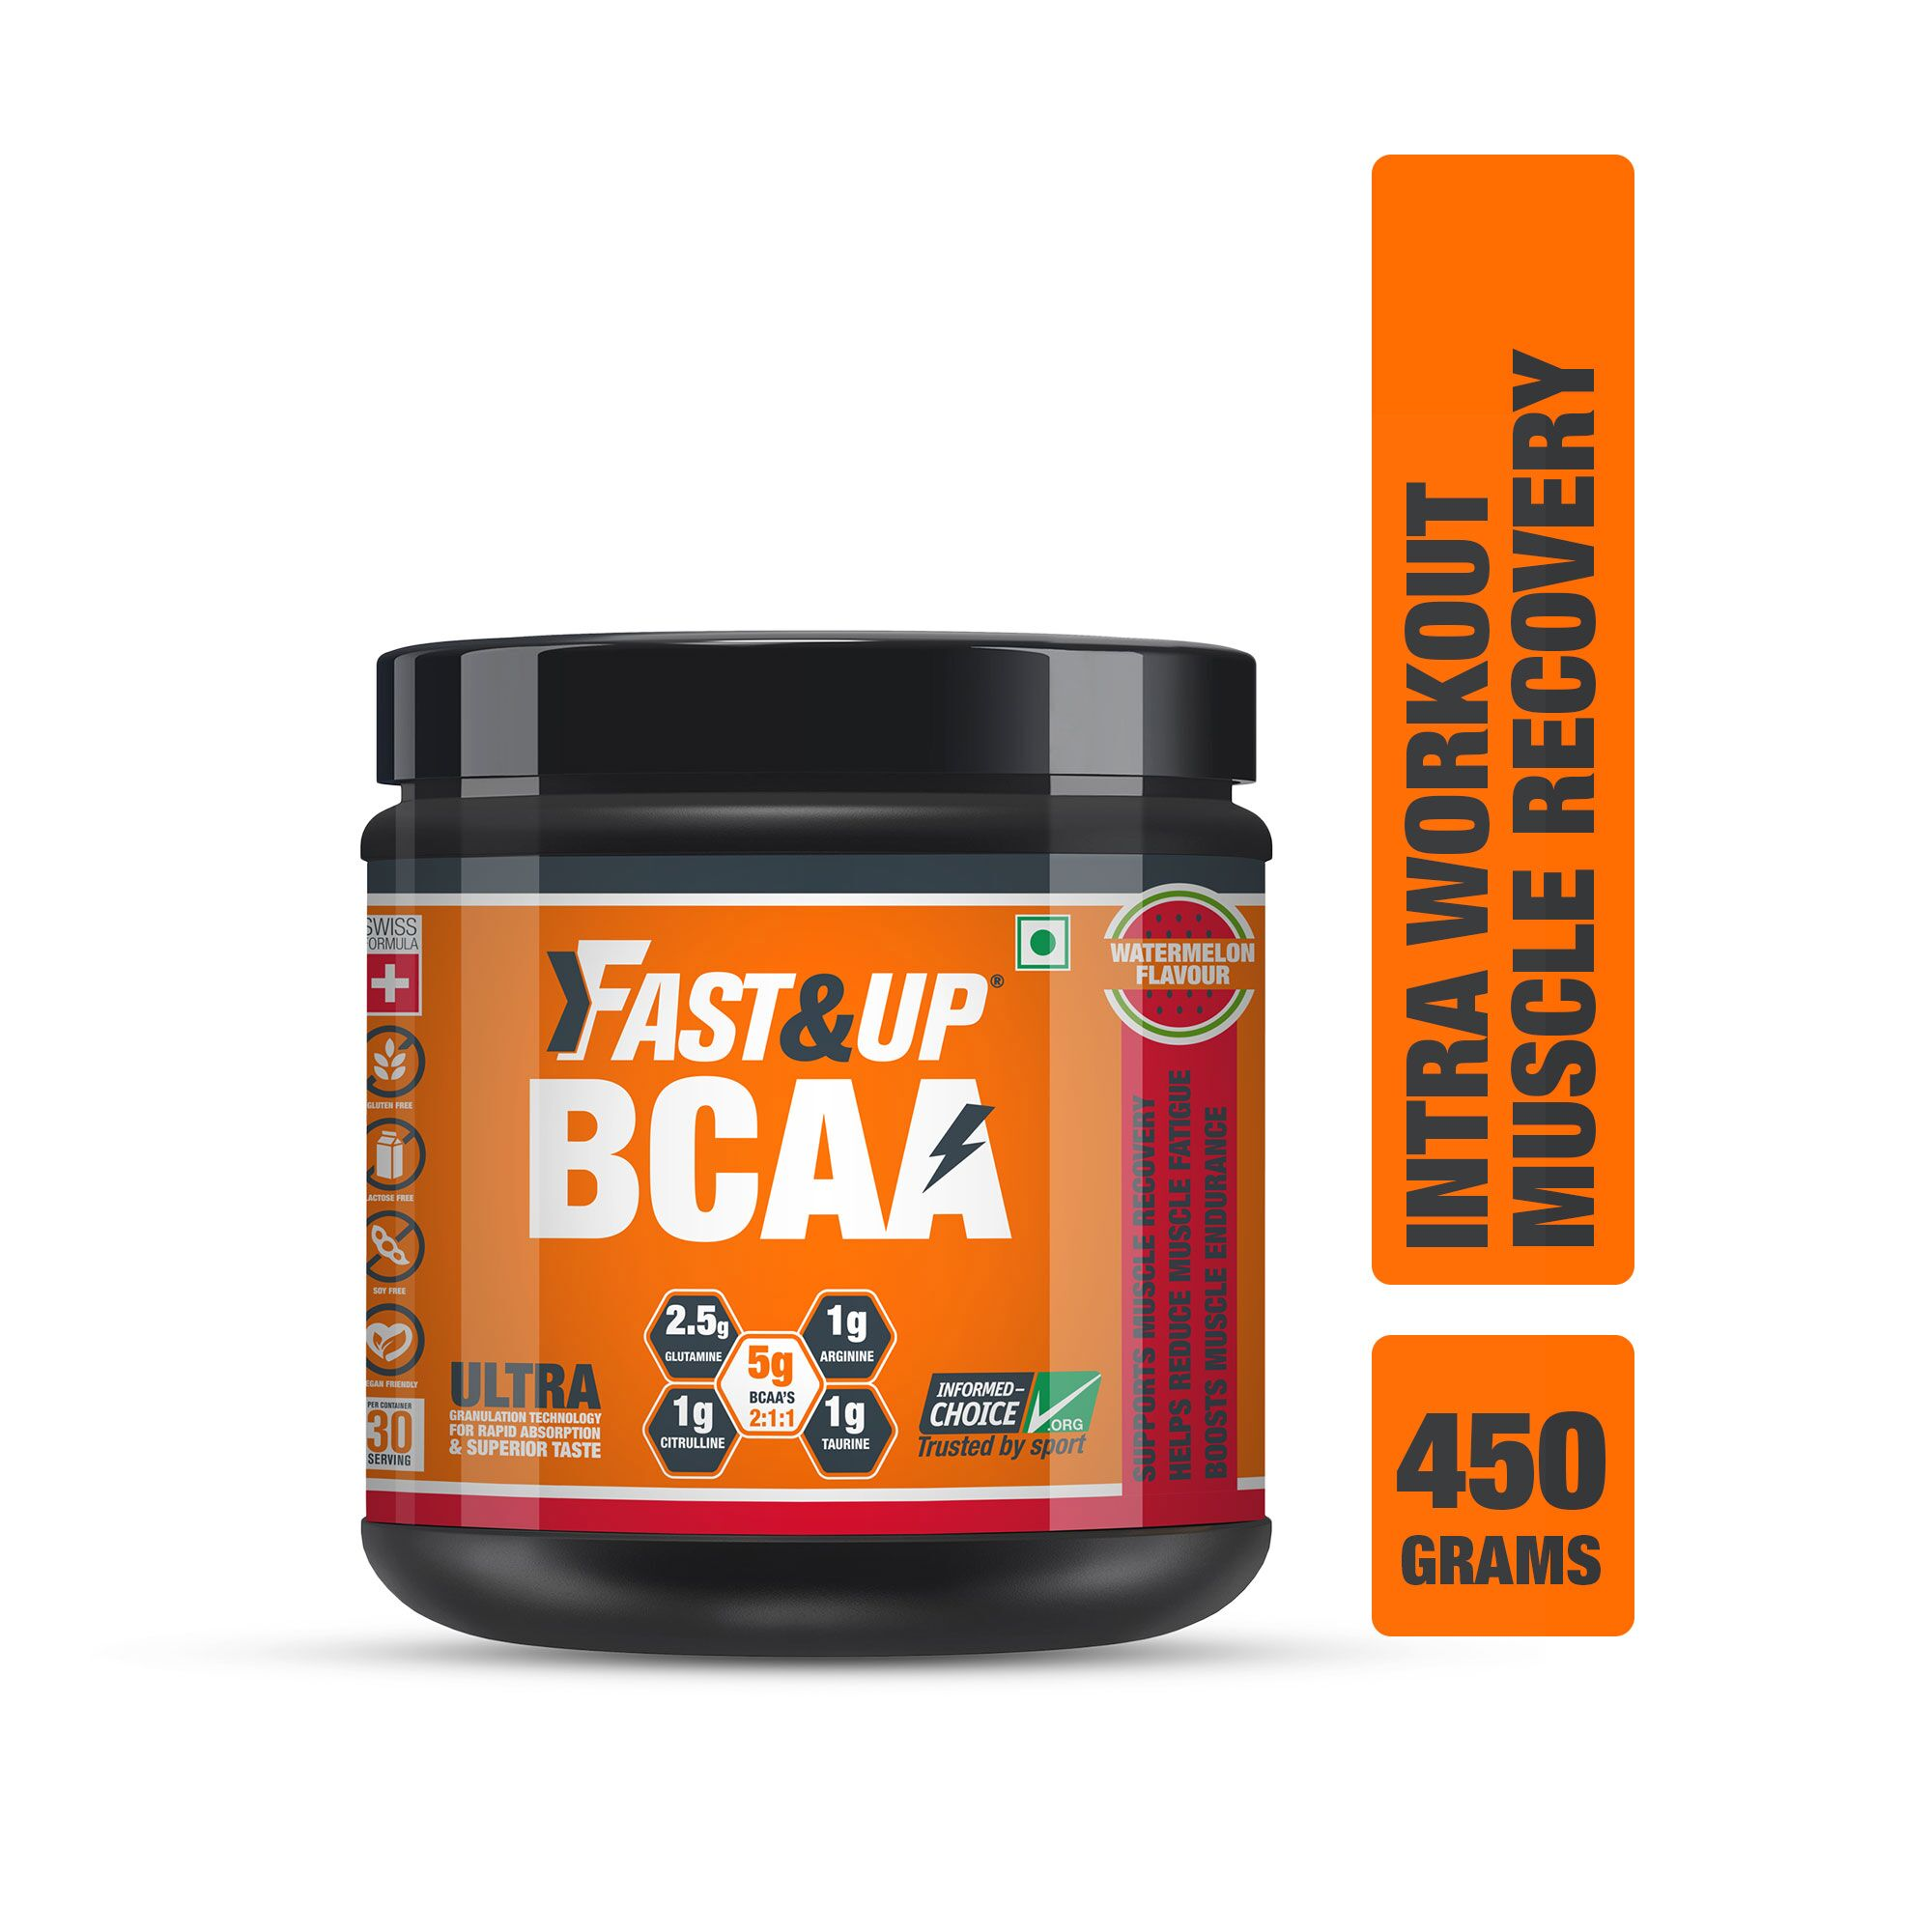 Fast&Up BCAA 2:1:1 For Pre/Intra/Post Workout With Arginine, Glutamine And Muscle Activation Boosters - 450 Gms - Watermelon Flavour